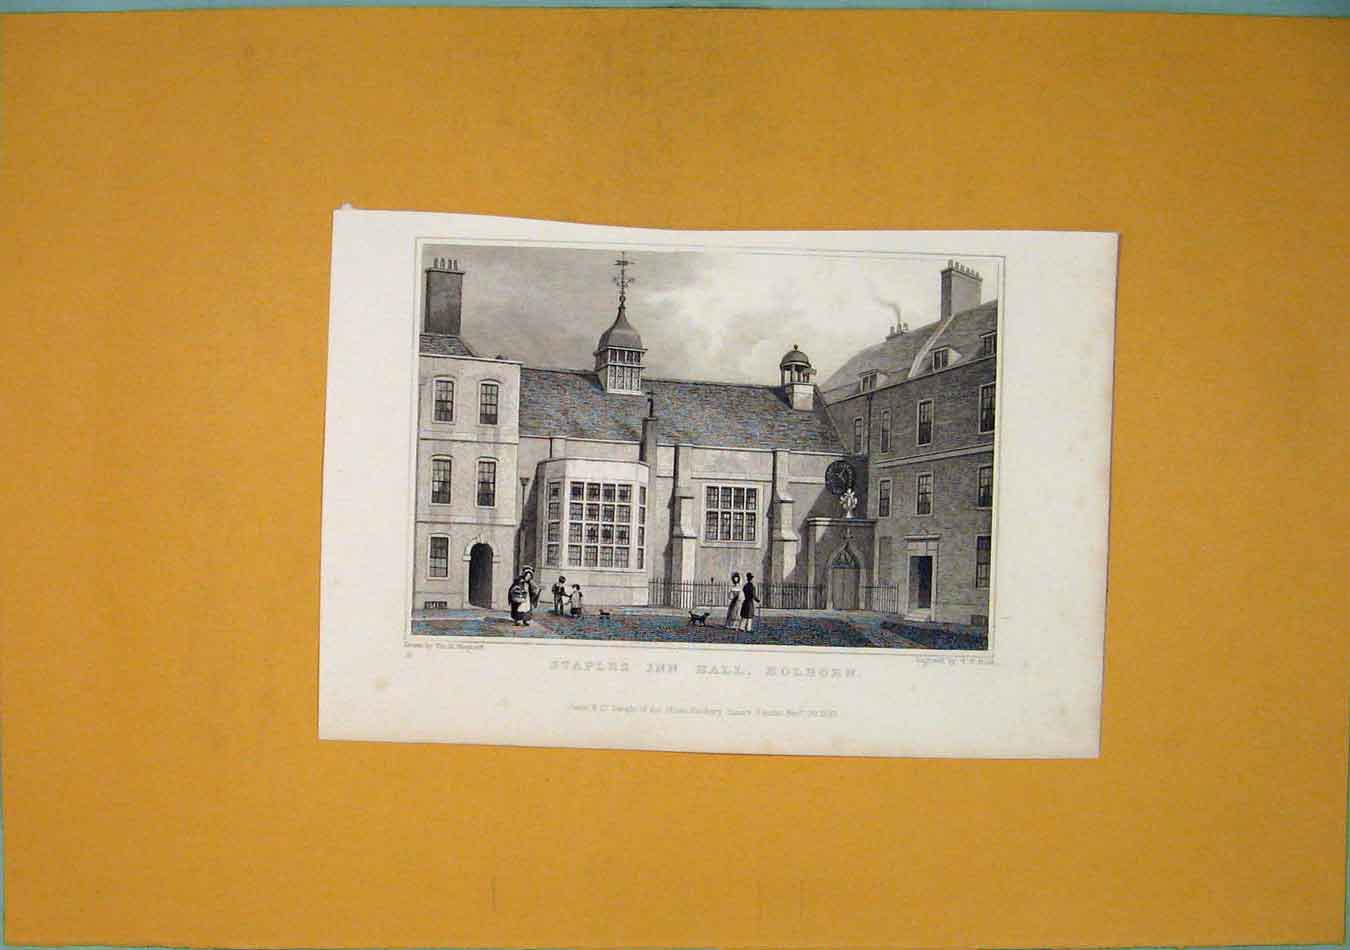 Print Staples Inn Hall Holborn Fine Art 016451 Old Original